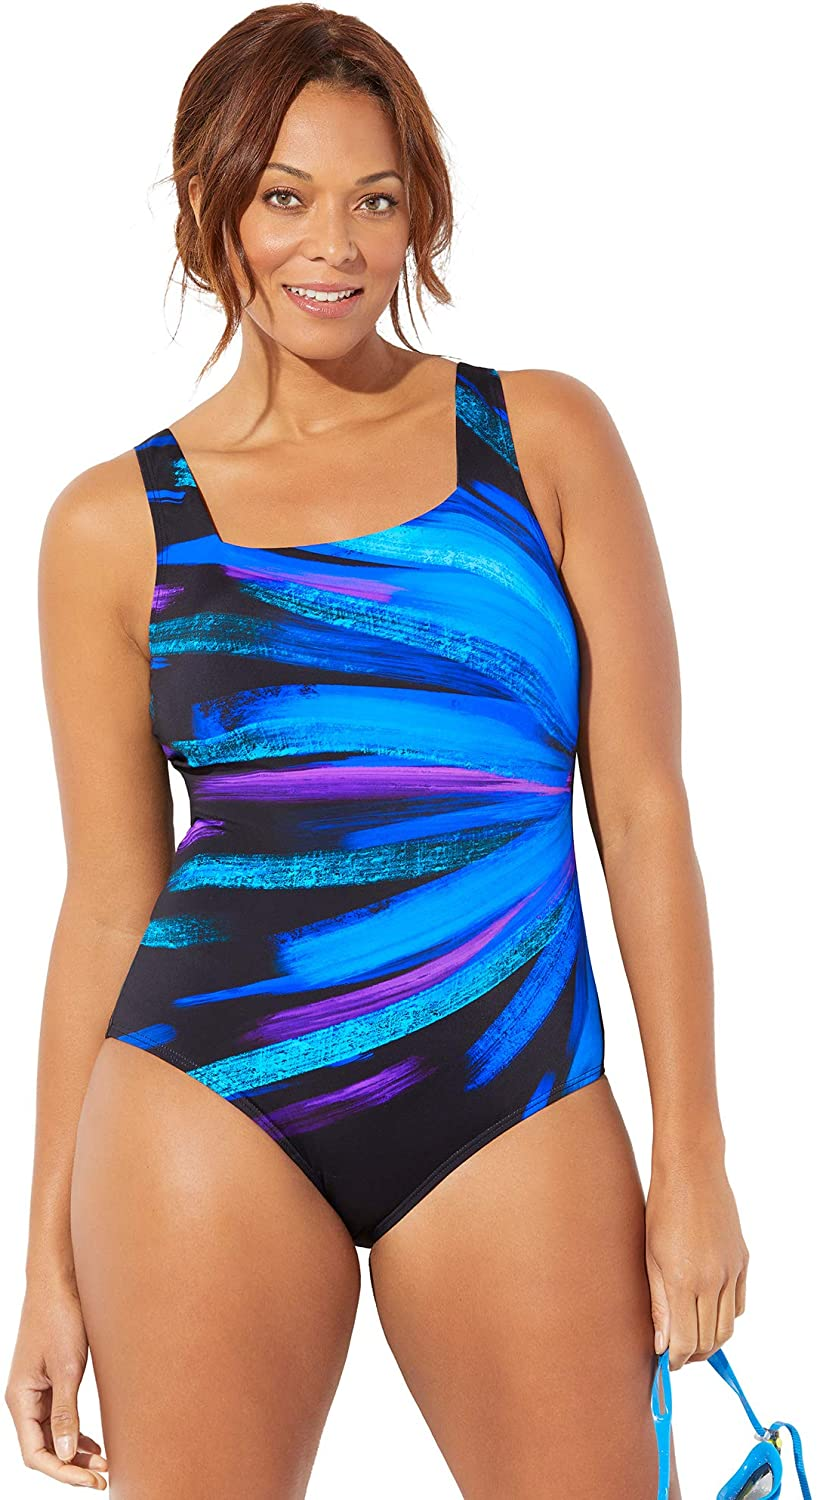 Swimsuits For All Women's Plus Size Chlorine Resistant Lycra Xtra Life Square Neck One Piece Swimsuit